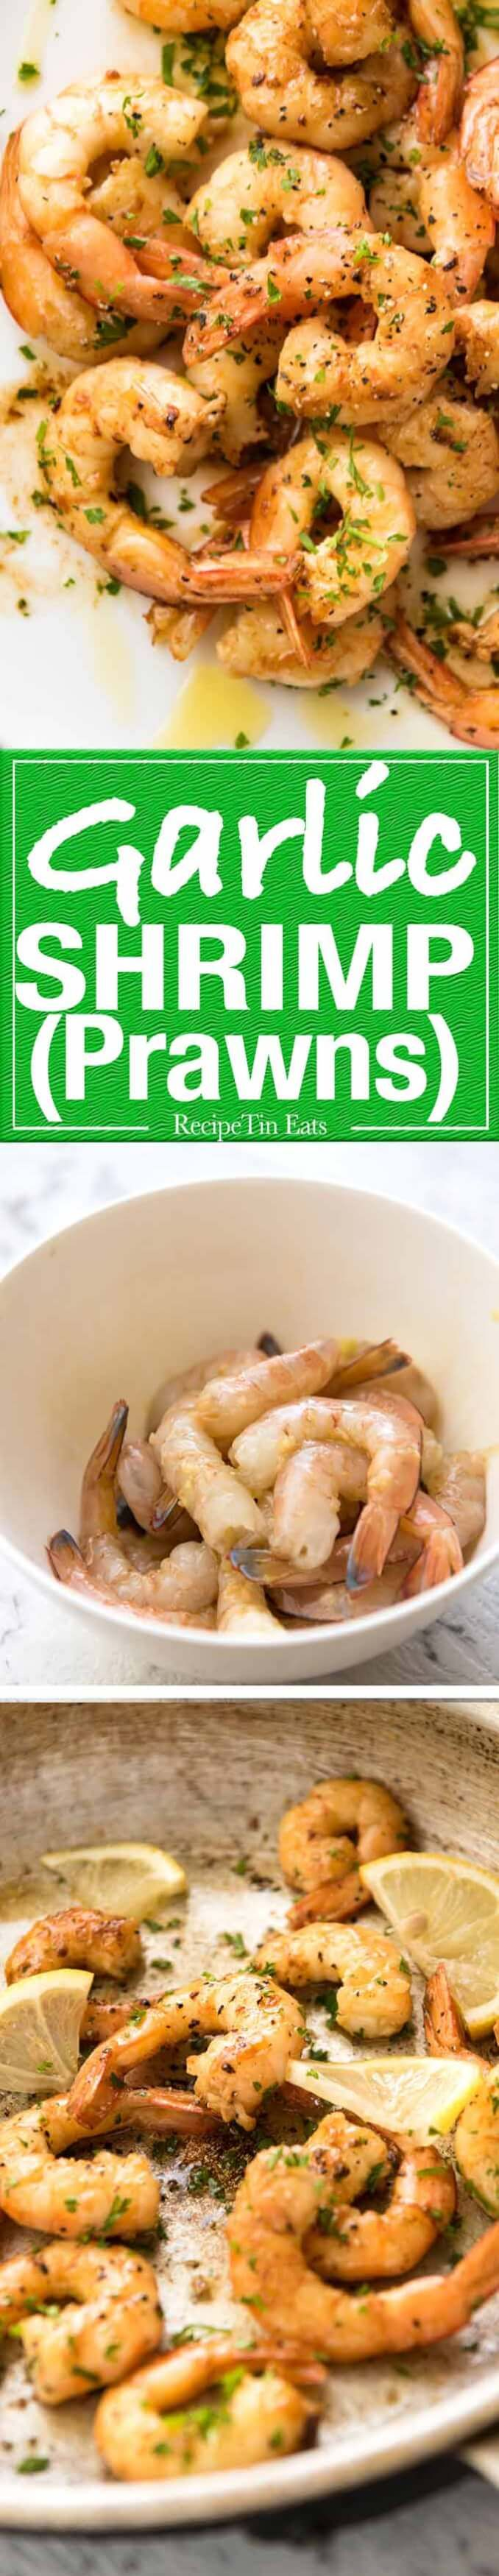 A sensational, simple way to cook prawns, these Garlic Prawns are made with garlic, olive oil and a splash of white wine. www.recipetineats.com